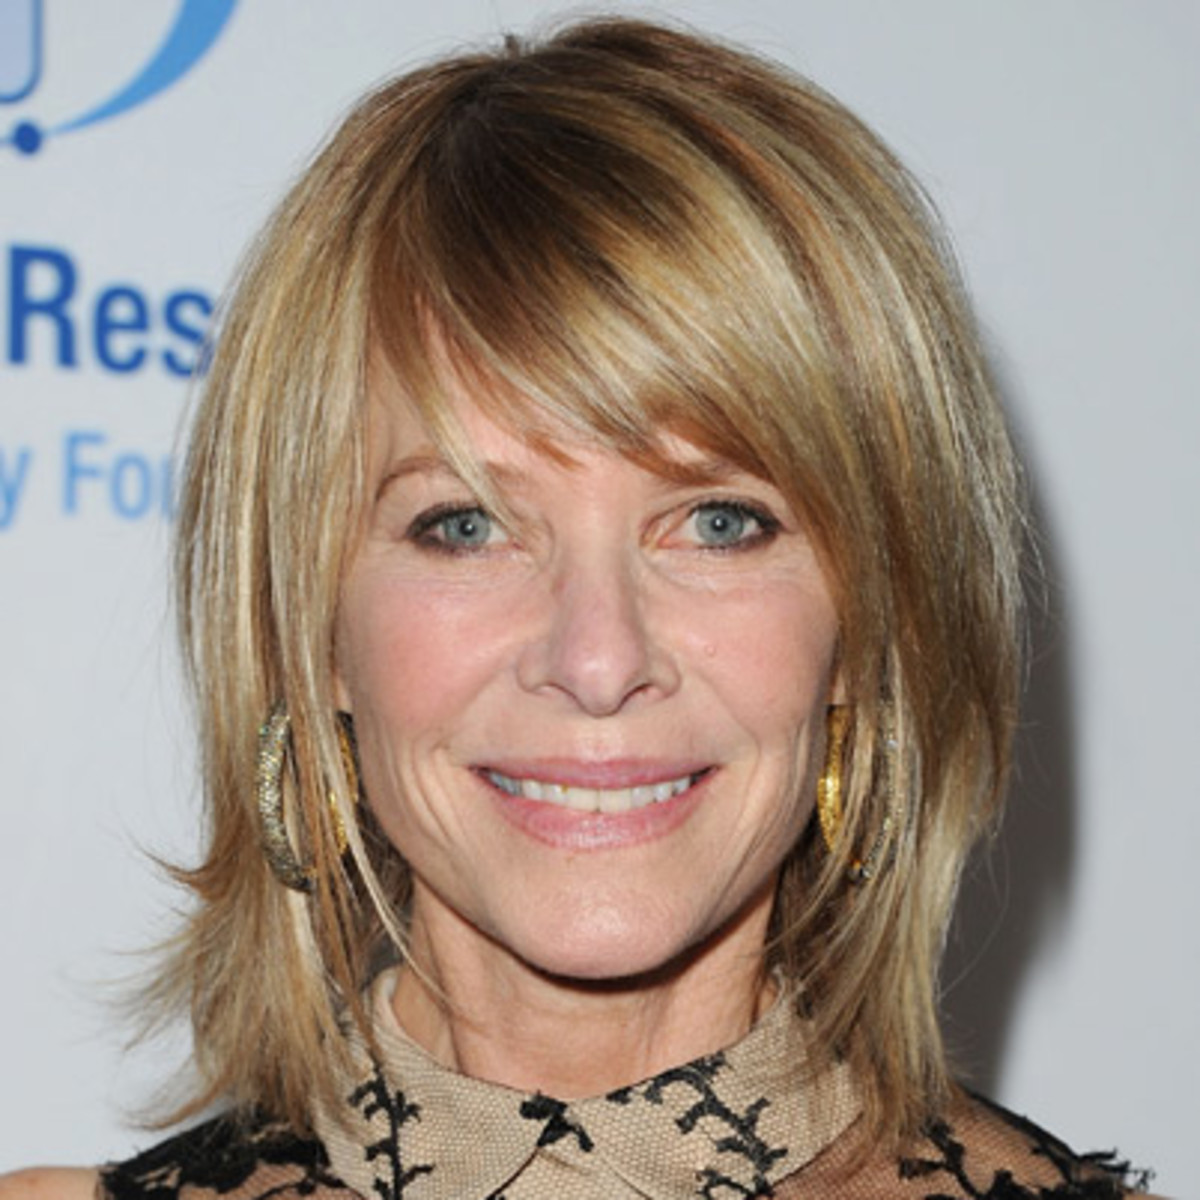 Discussion on this topic: Chloe Sainte-Marie, kate-capshaw/